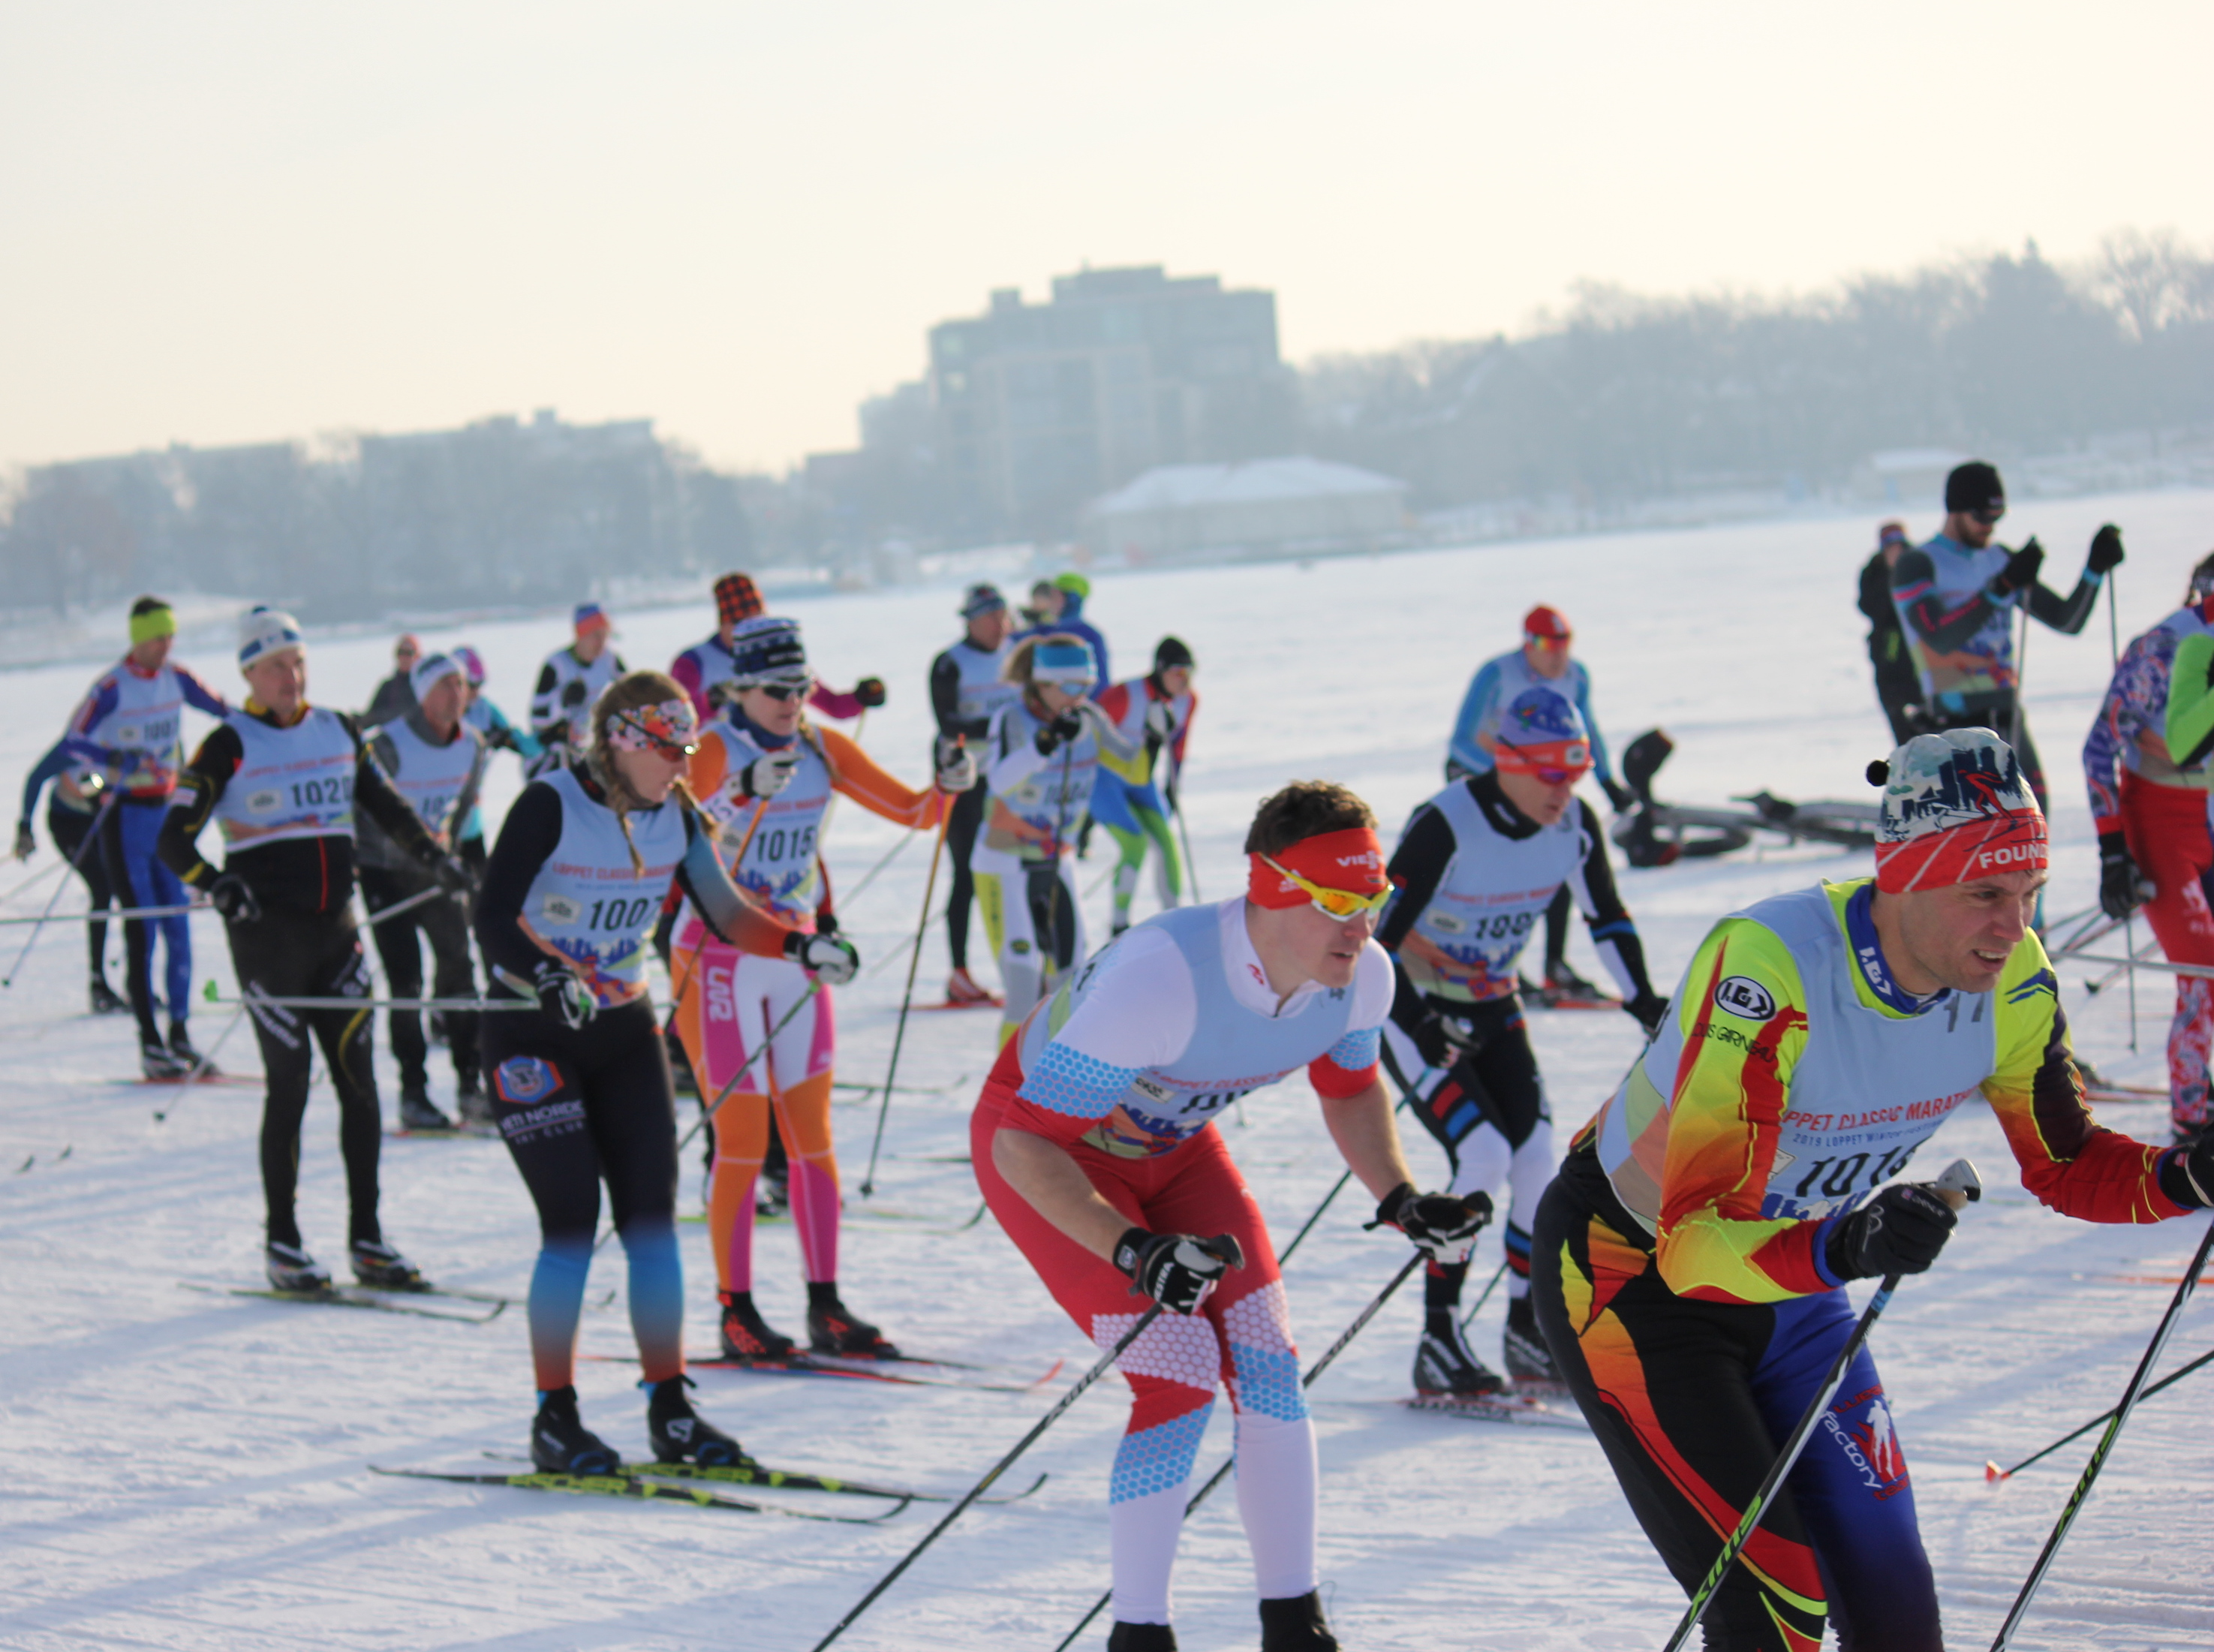 Skiers begin the Loppet's classic marathon race Feb. 2 on Bde Maka Ska. Photo by Andrew Hazzard